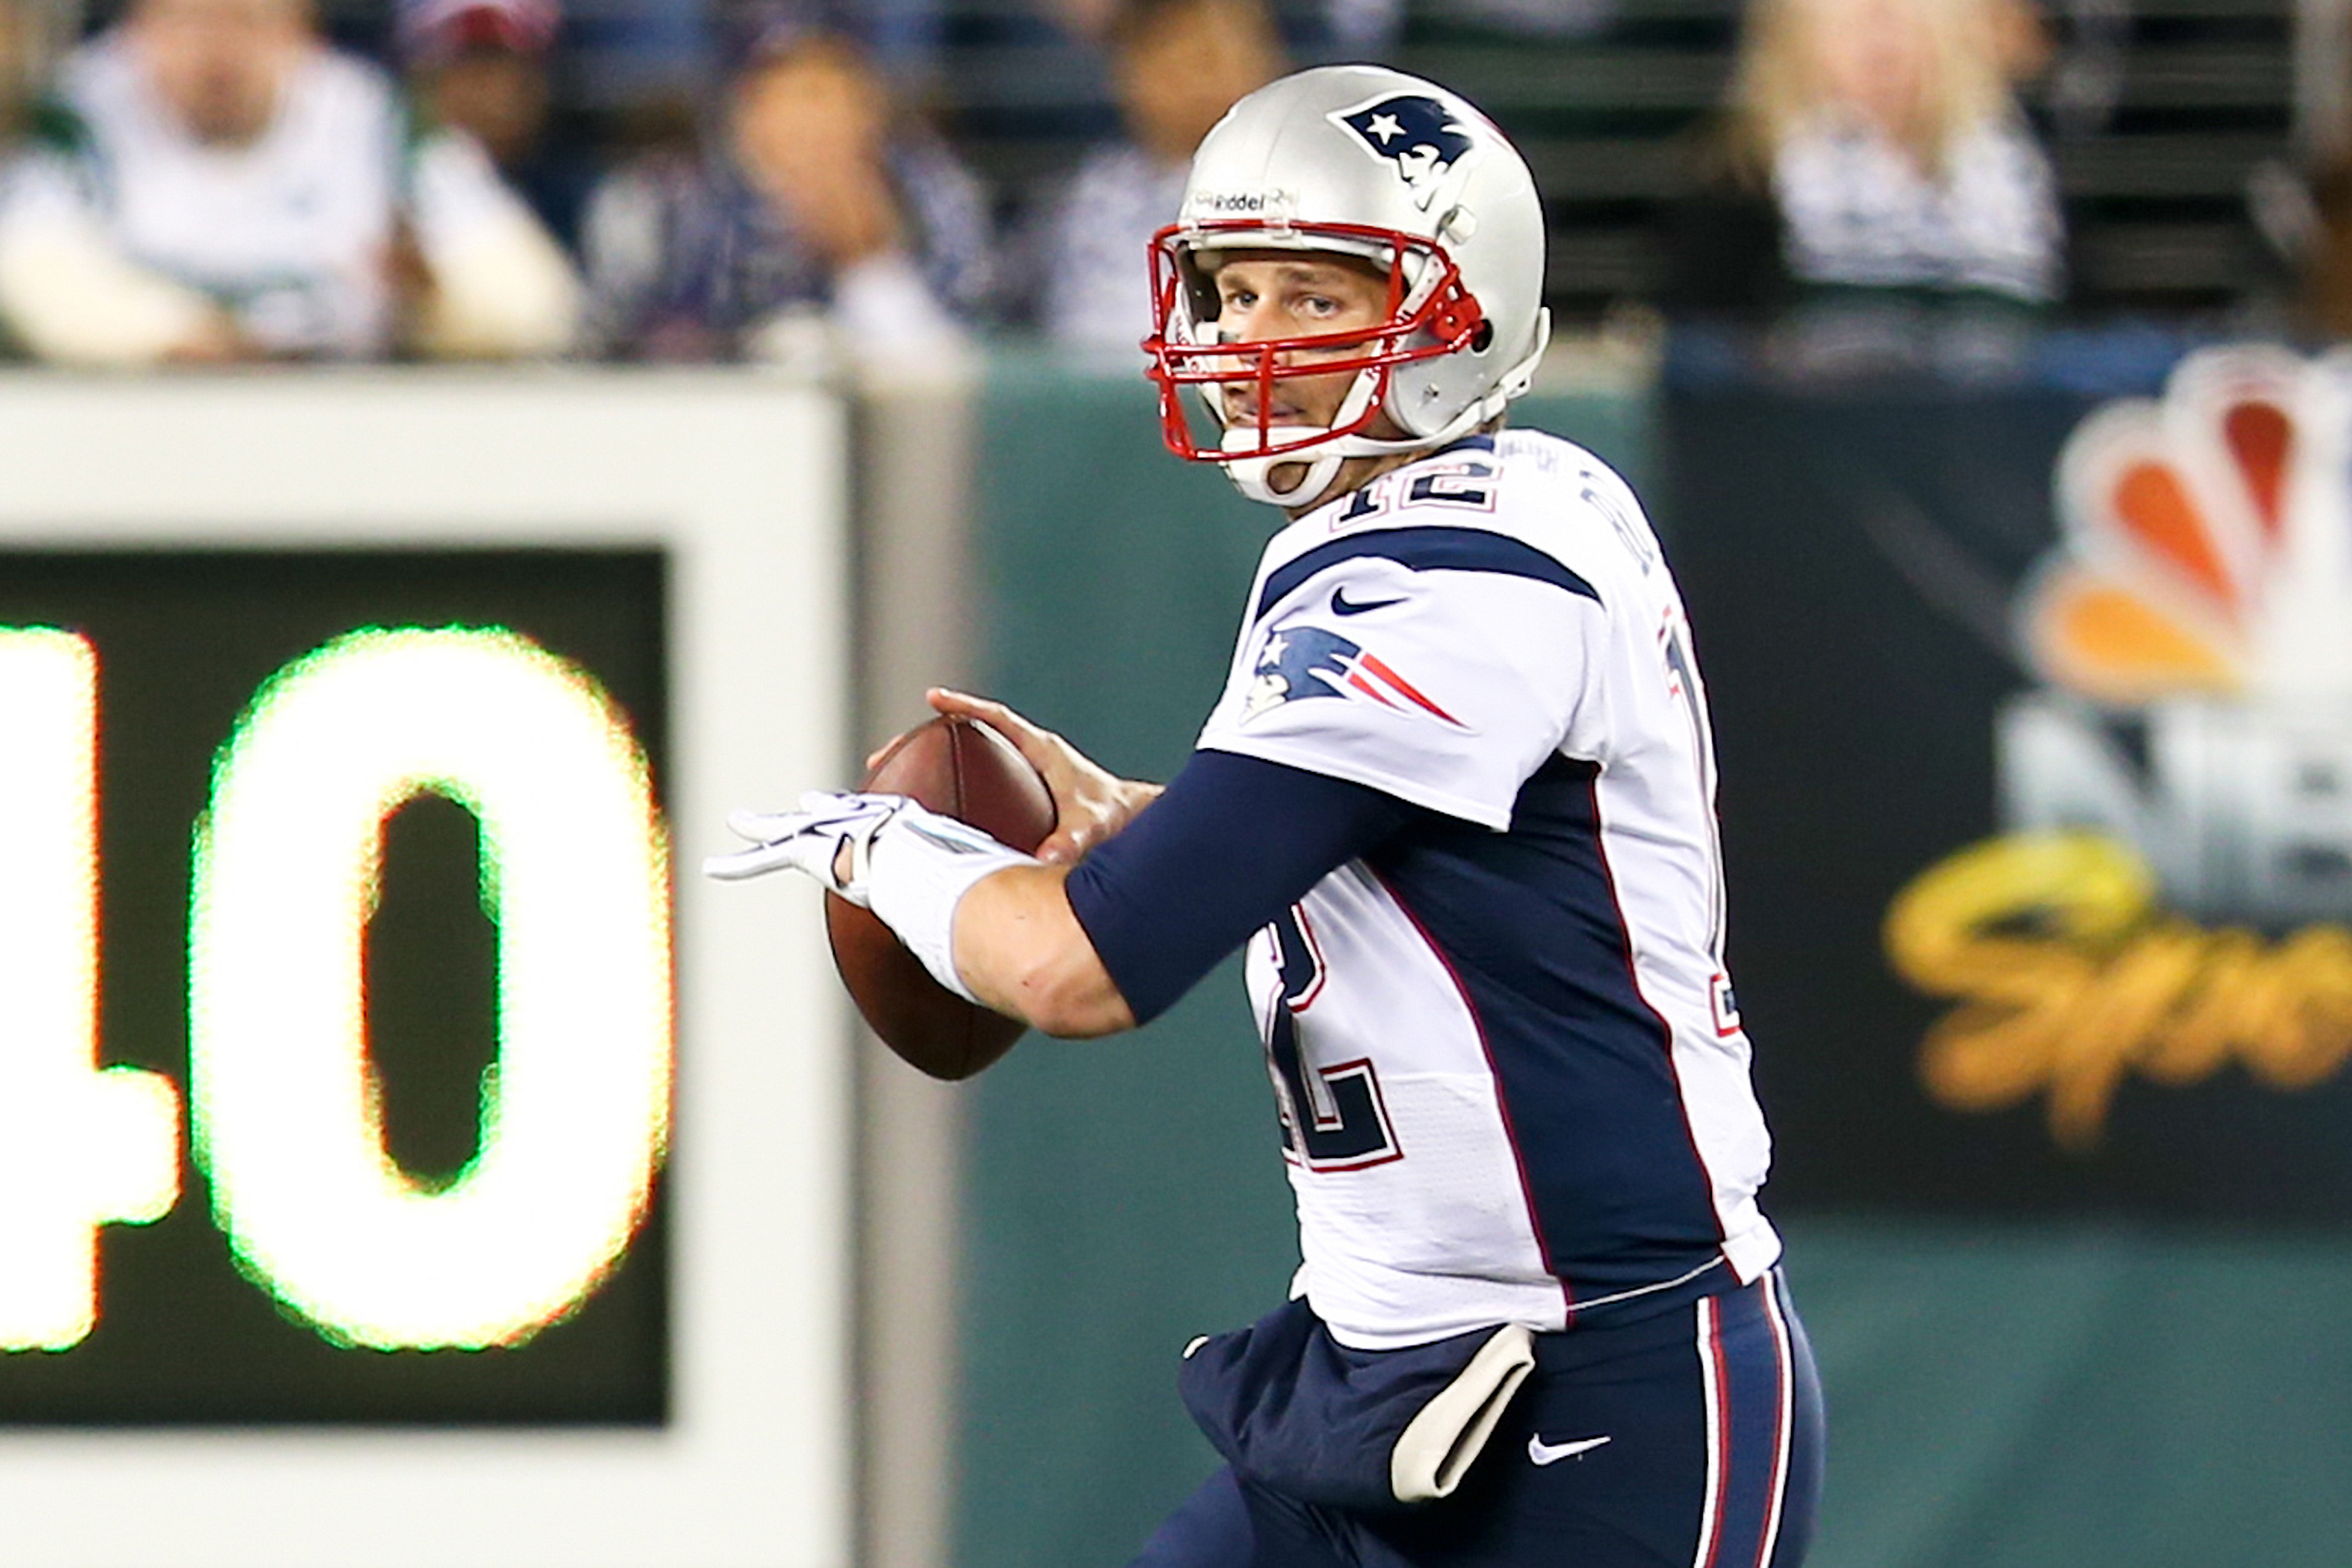 DraftKings launches NFT marketplace with first drop featuring Tom Brady